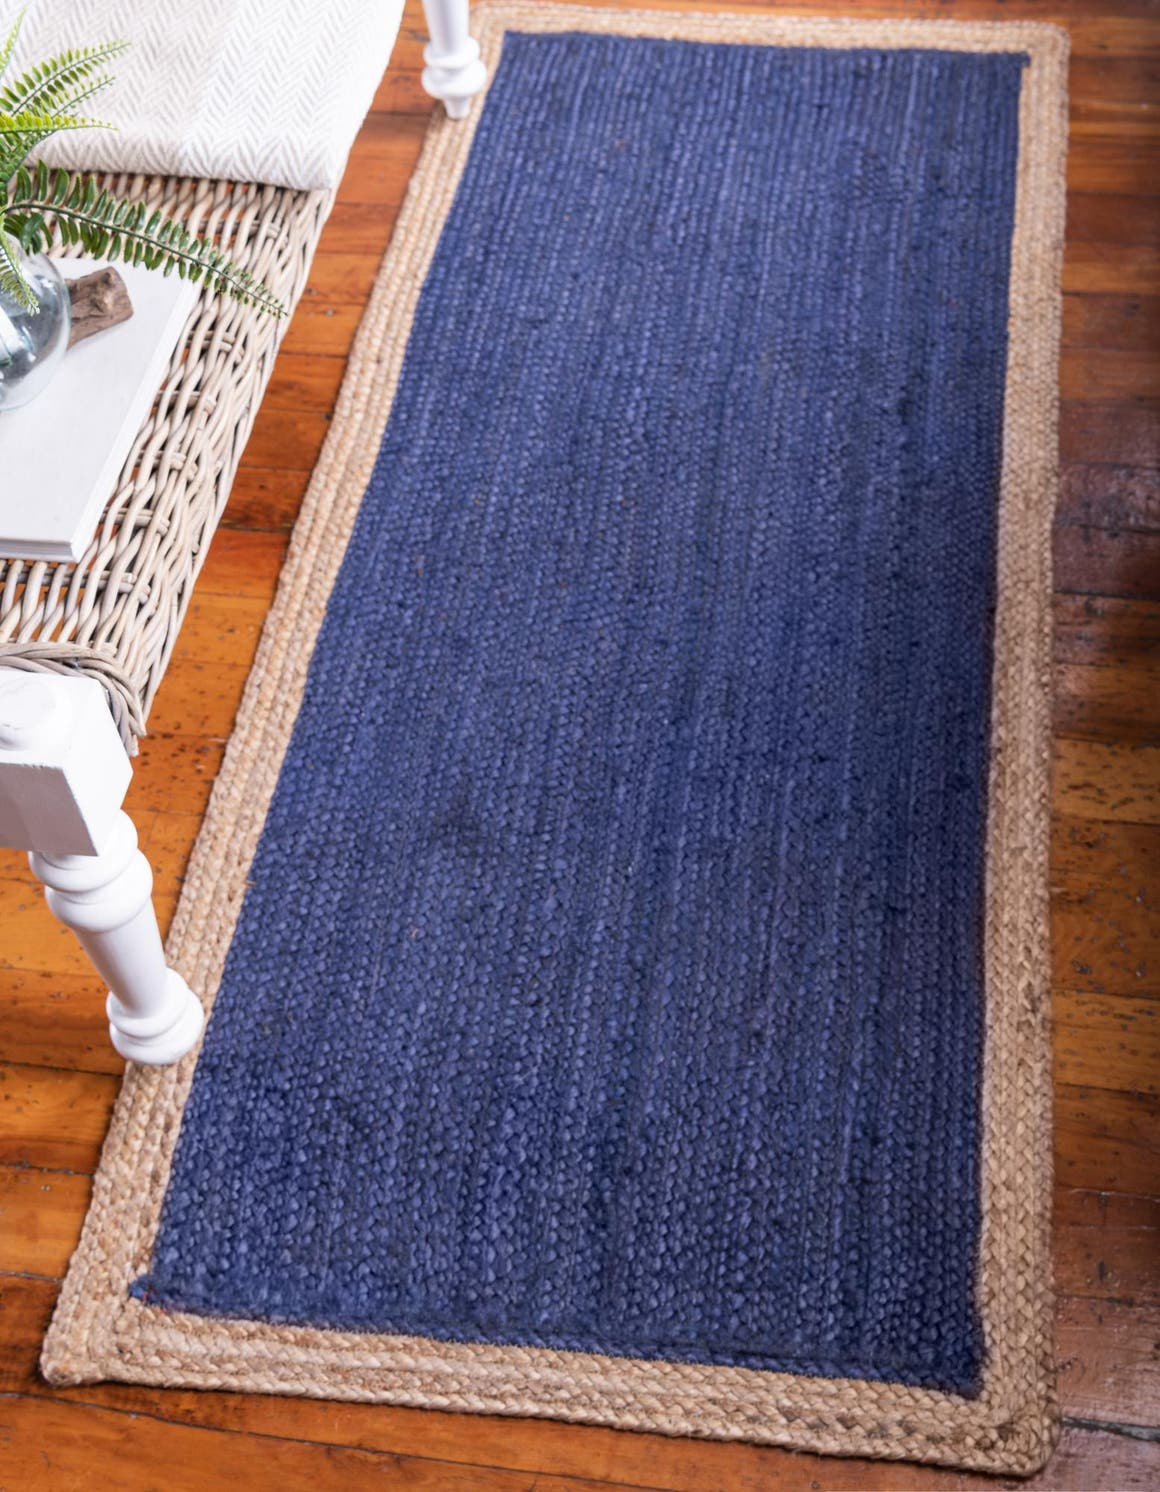 2' 6 x 6' Braided Jute Runner Rug main image